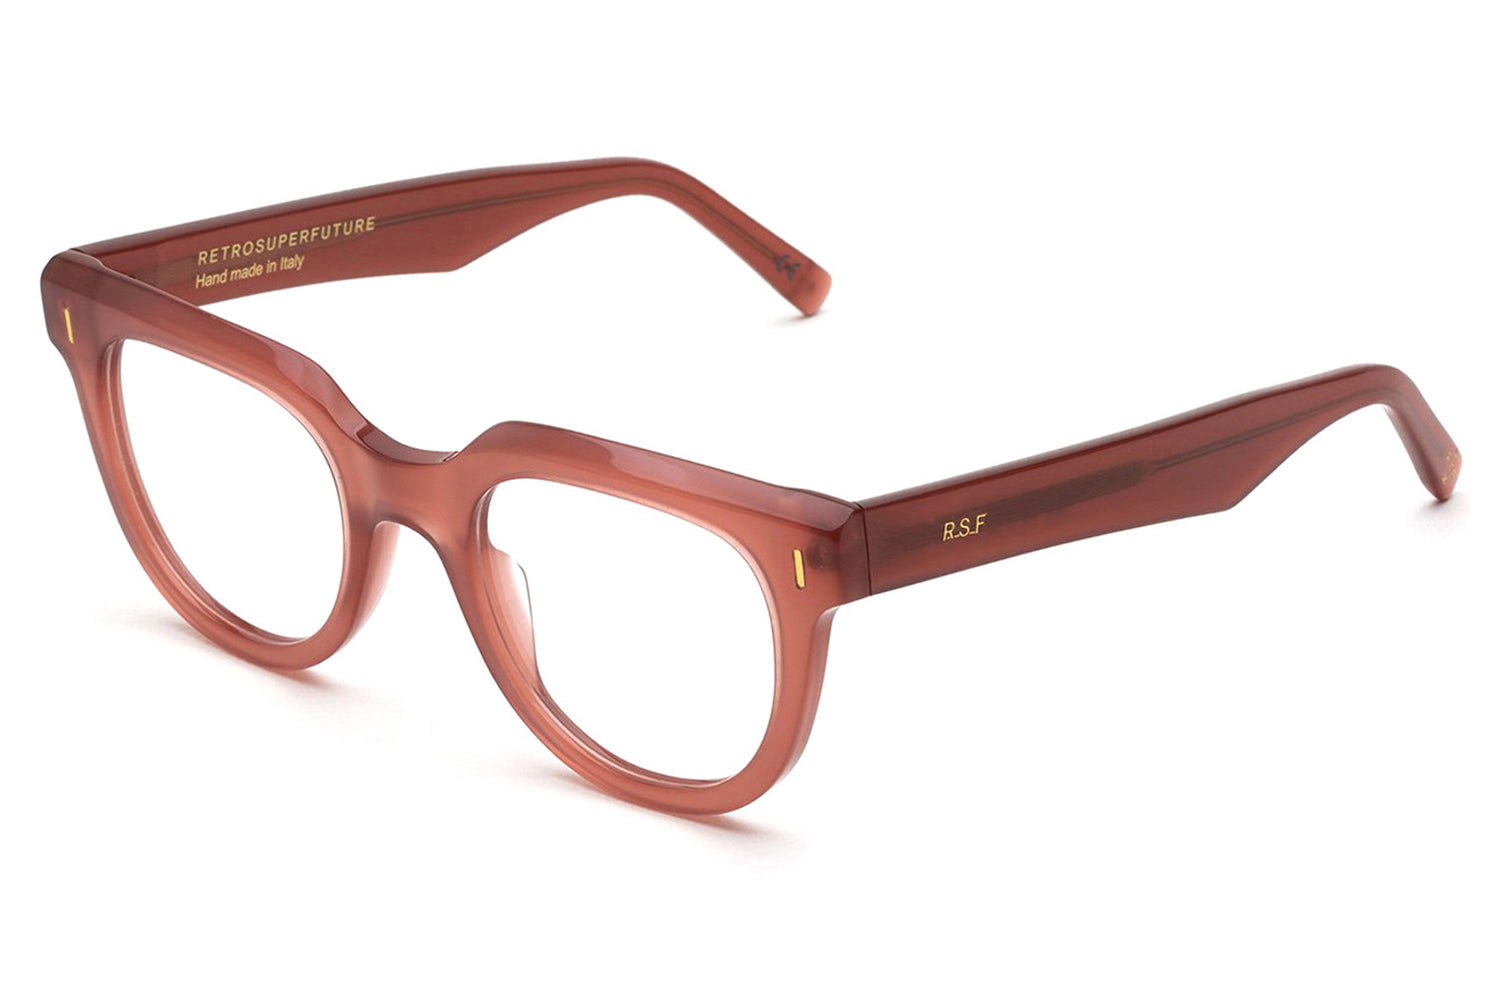 Retro Super Future® - Numero 82 Eyeglasses Attuale